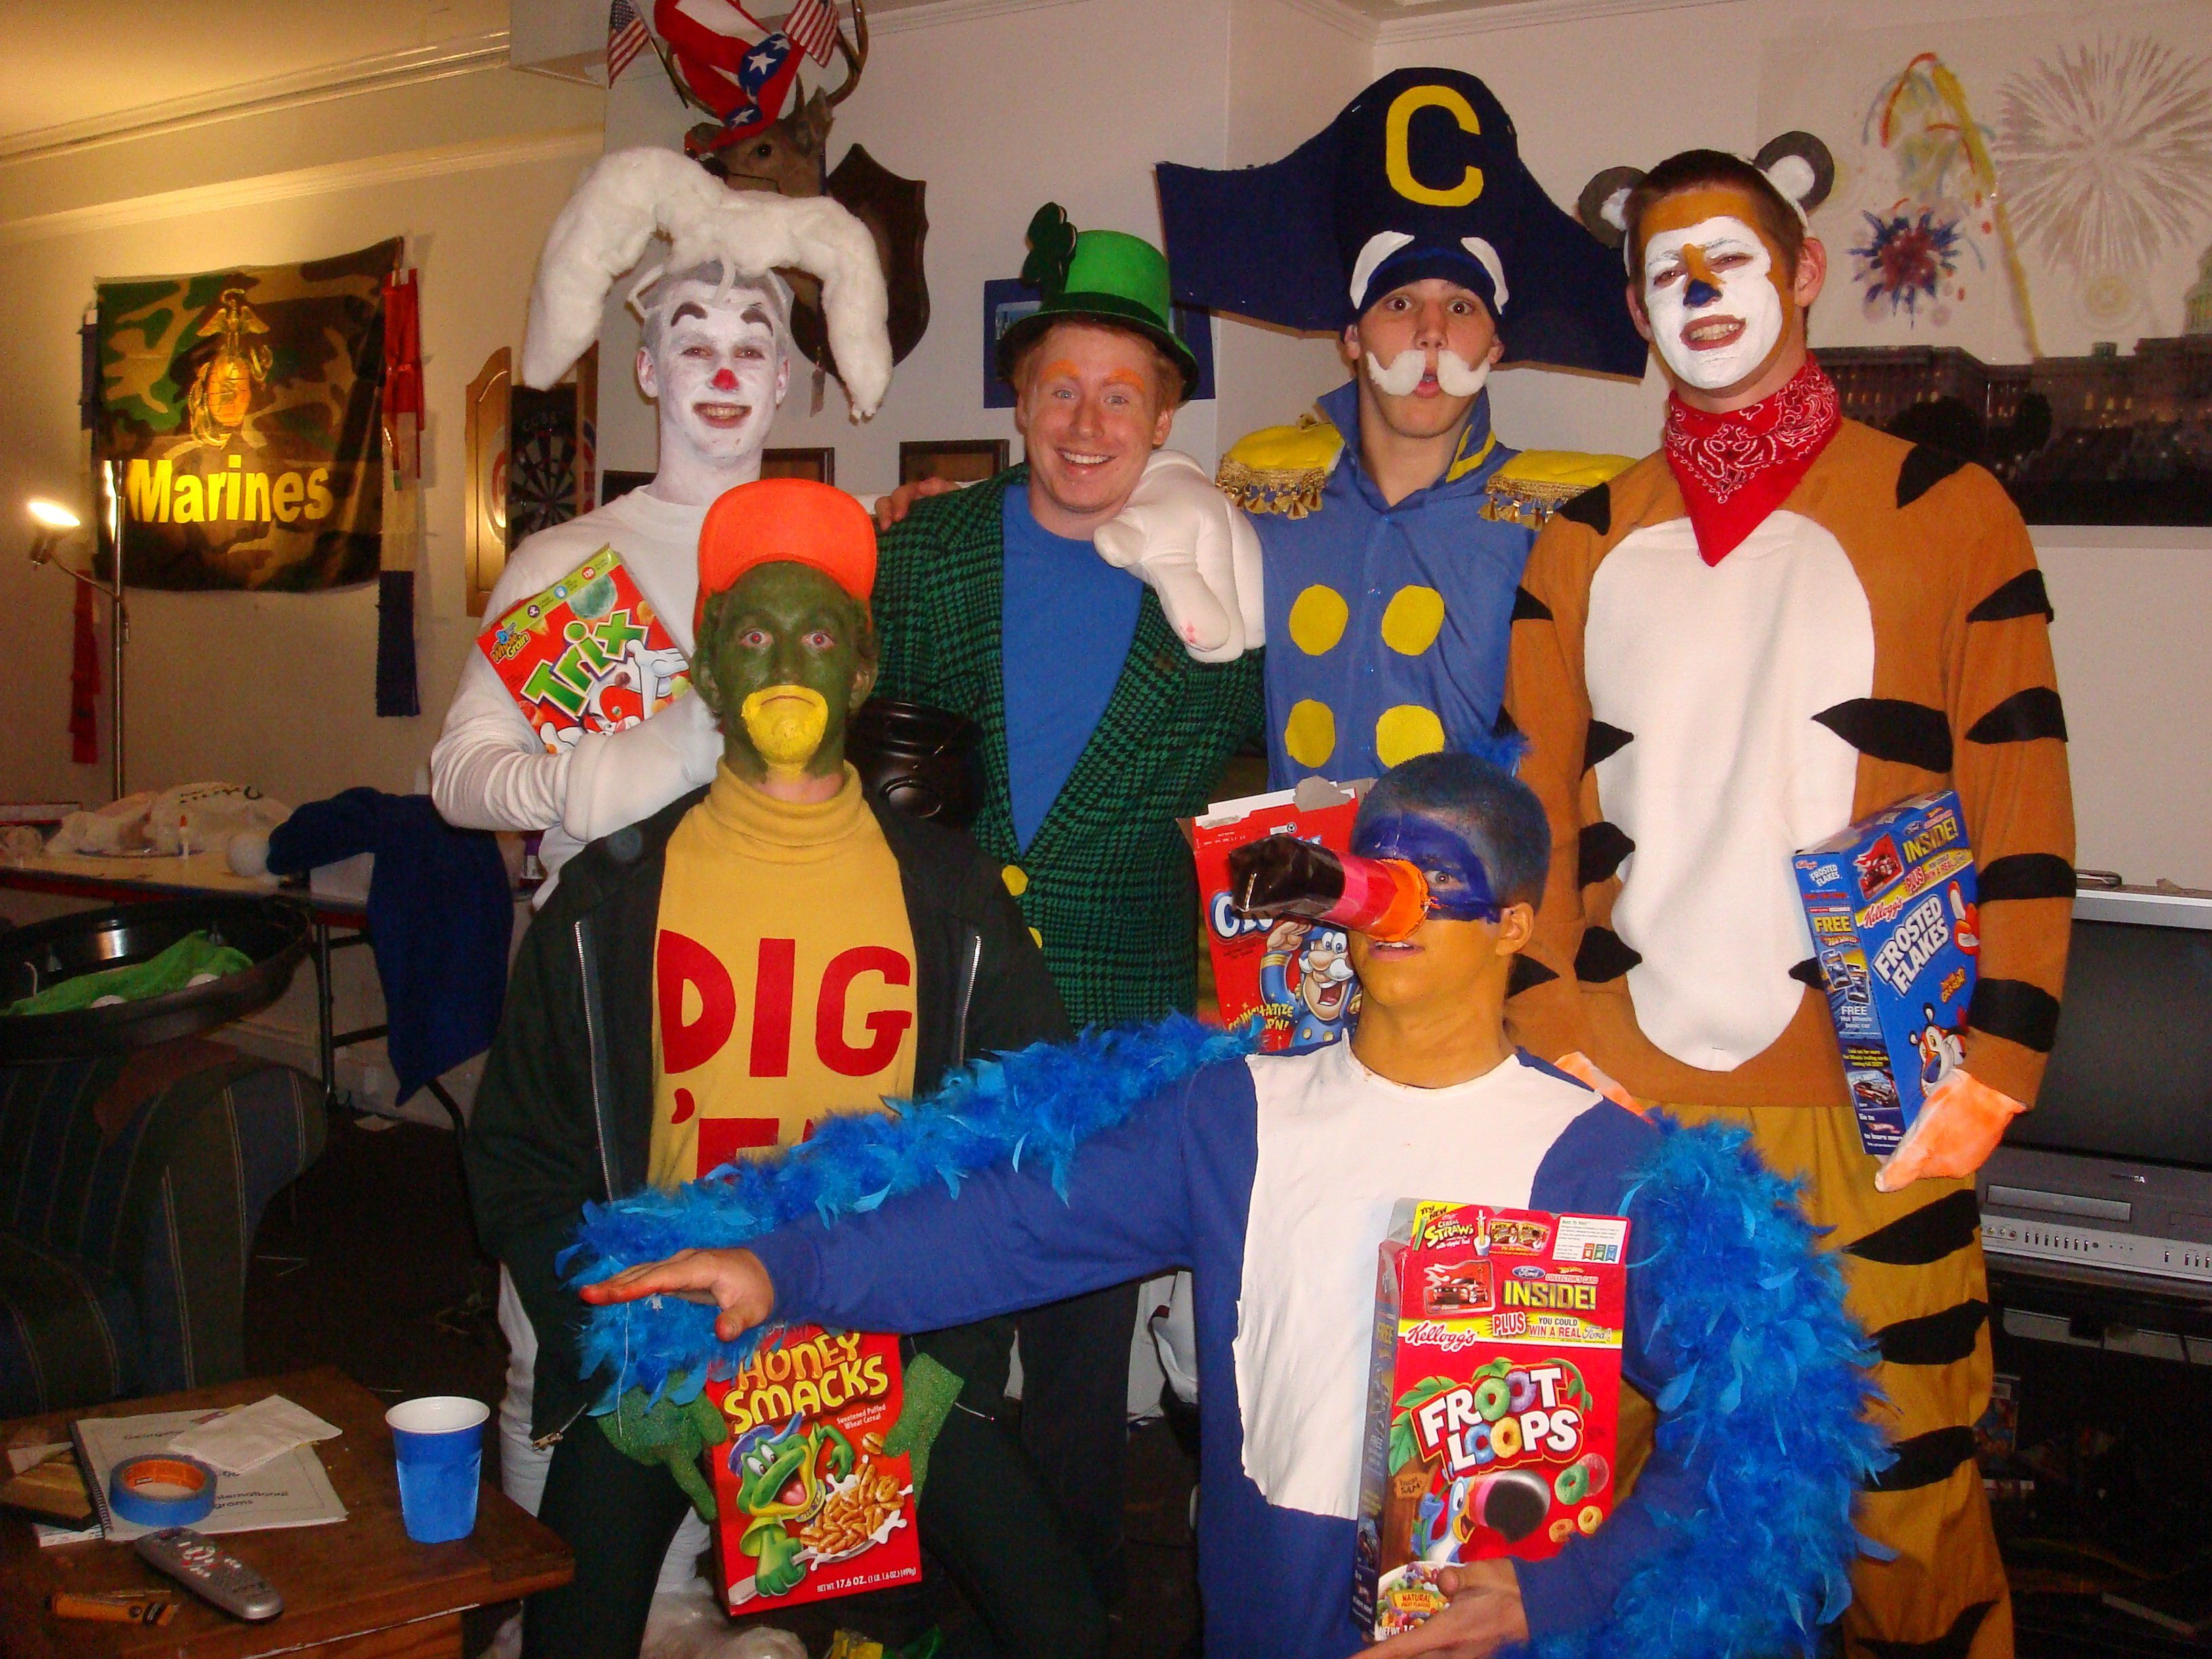 Cereal mascots halloween costumes for work character